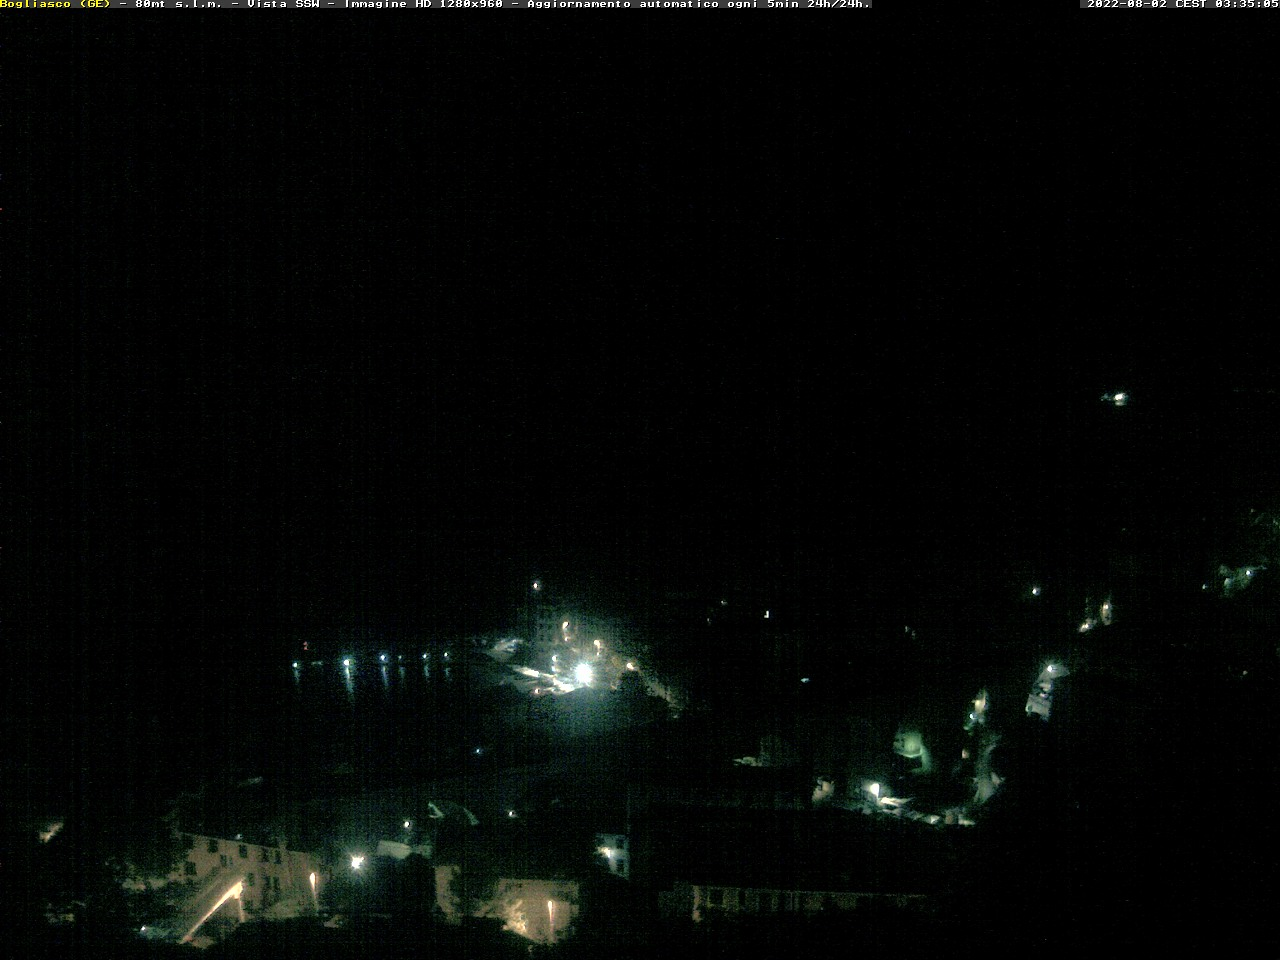 http://www.prolocobogliasco.it/webcam/current_hd.jpg